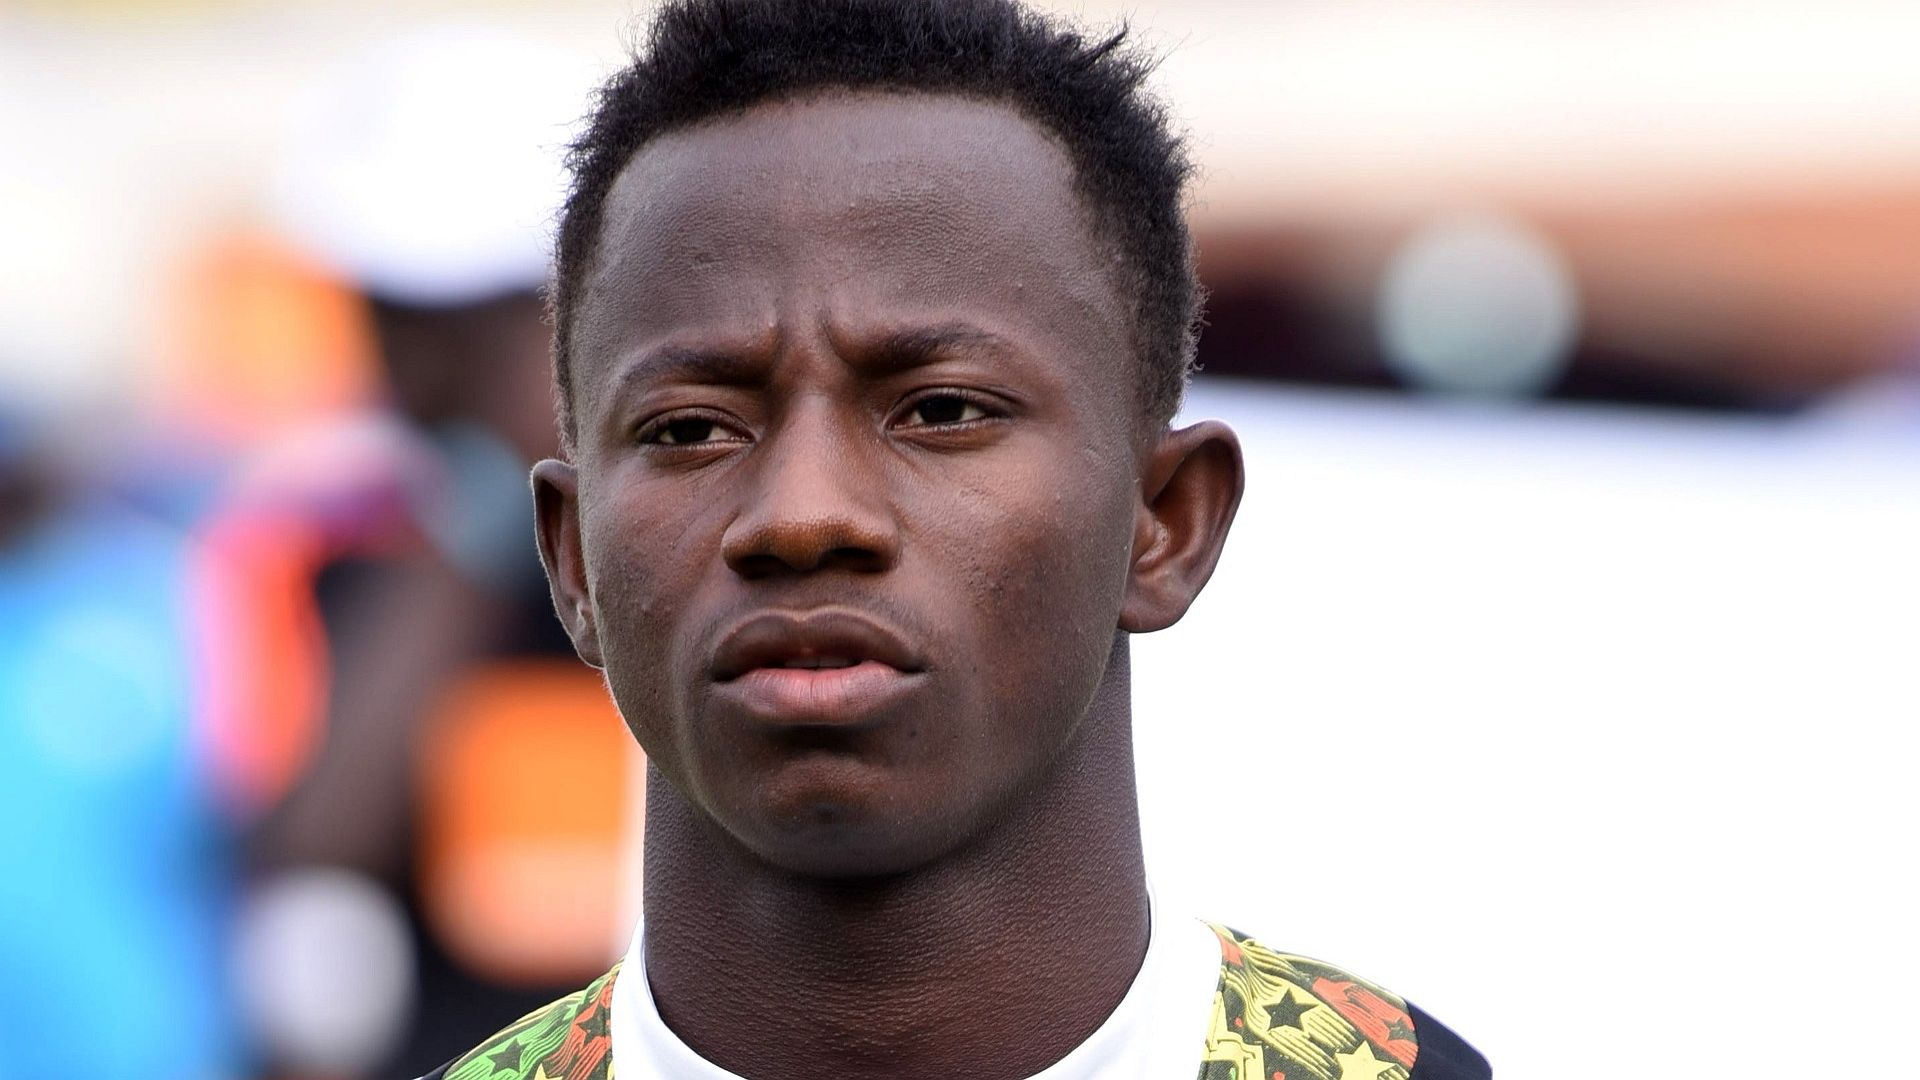 U23 Afcon: Ghana captain Yeboah: We still have a chance to qualify